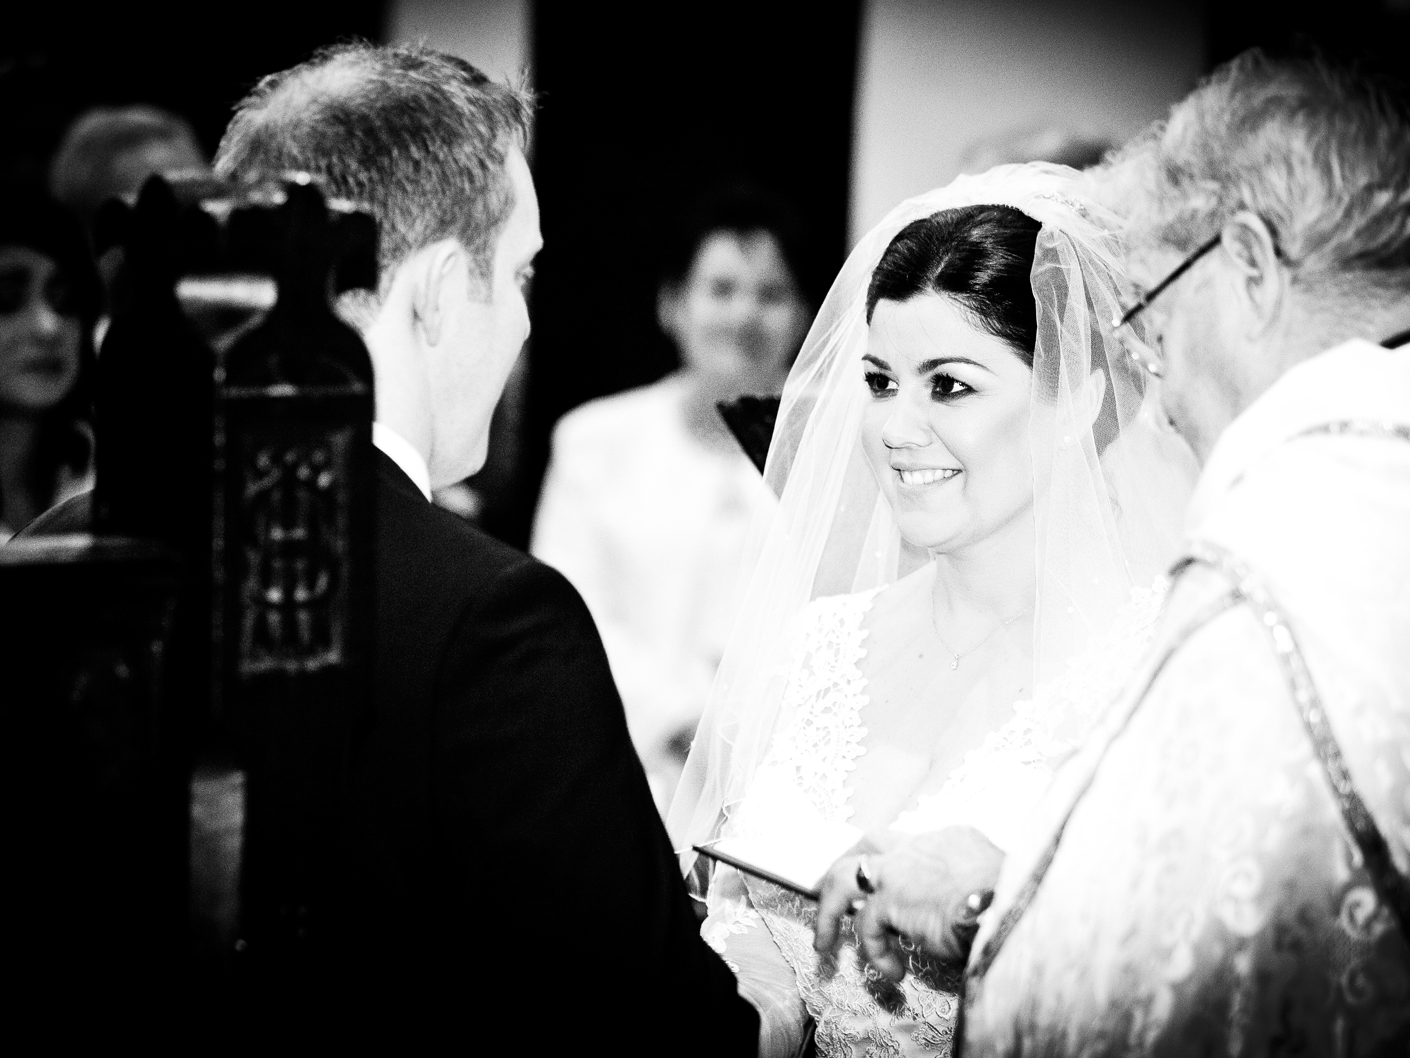 photography-of-the-wedding-vows-in-cheshire